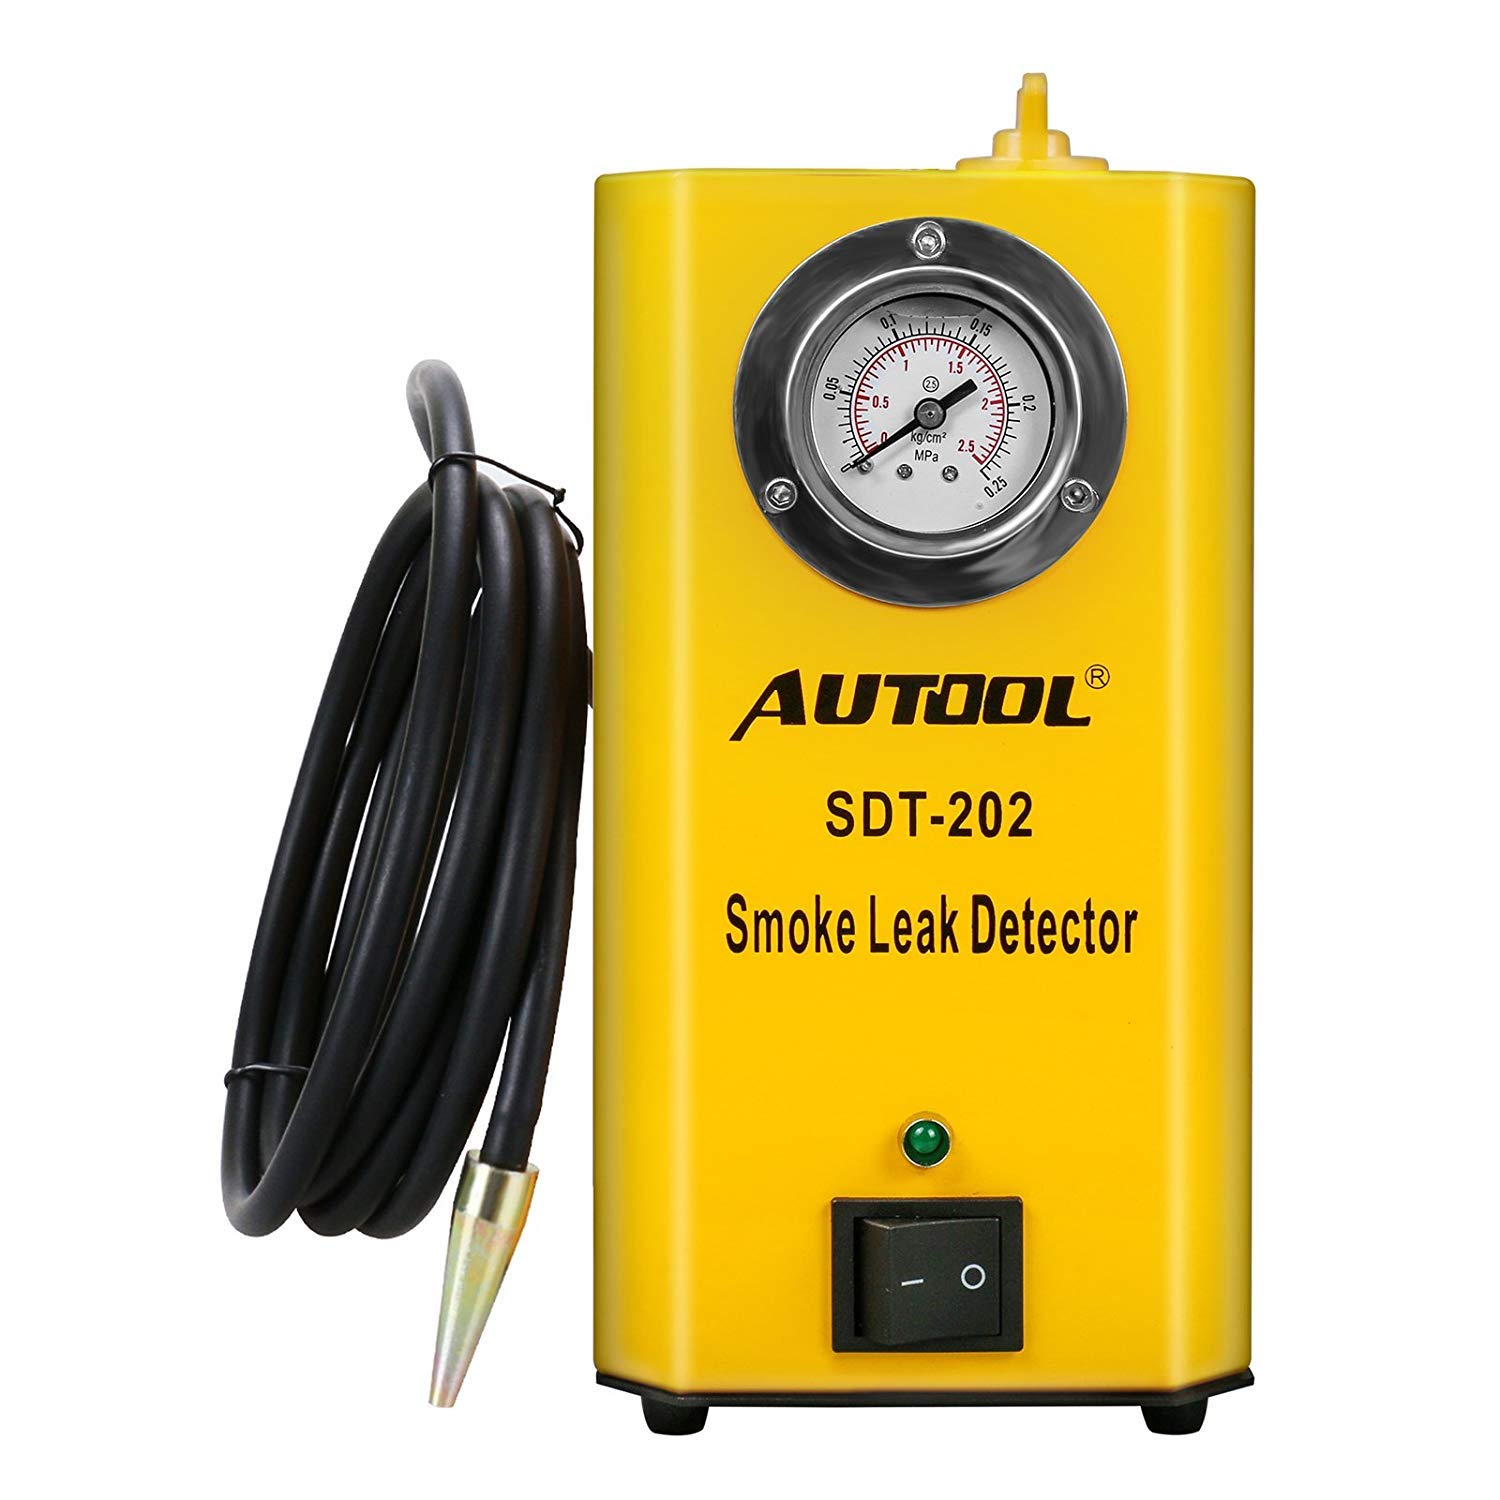 AUTOOL SDT 202 12V Automotive Fuel Leak Detectors with Pressure Gauge by AUTOOL (Image #6)